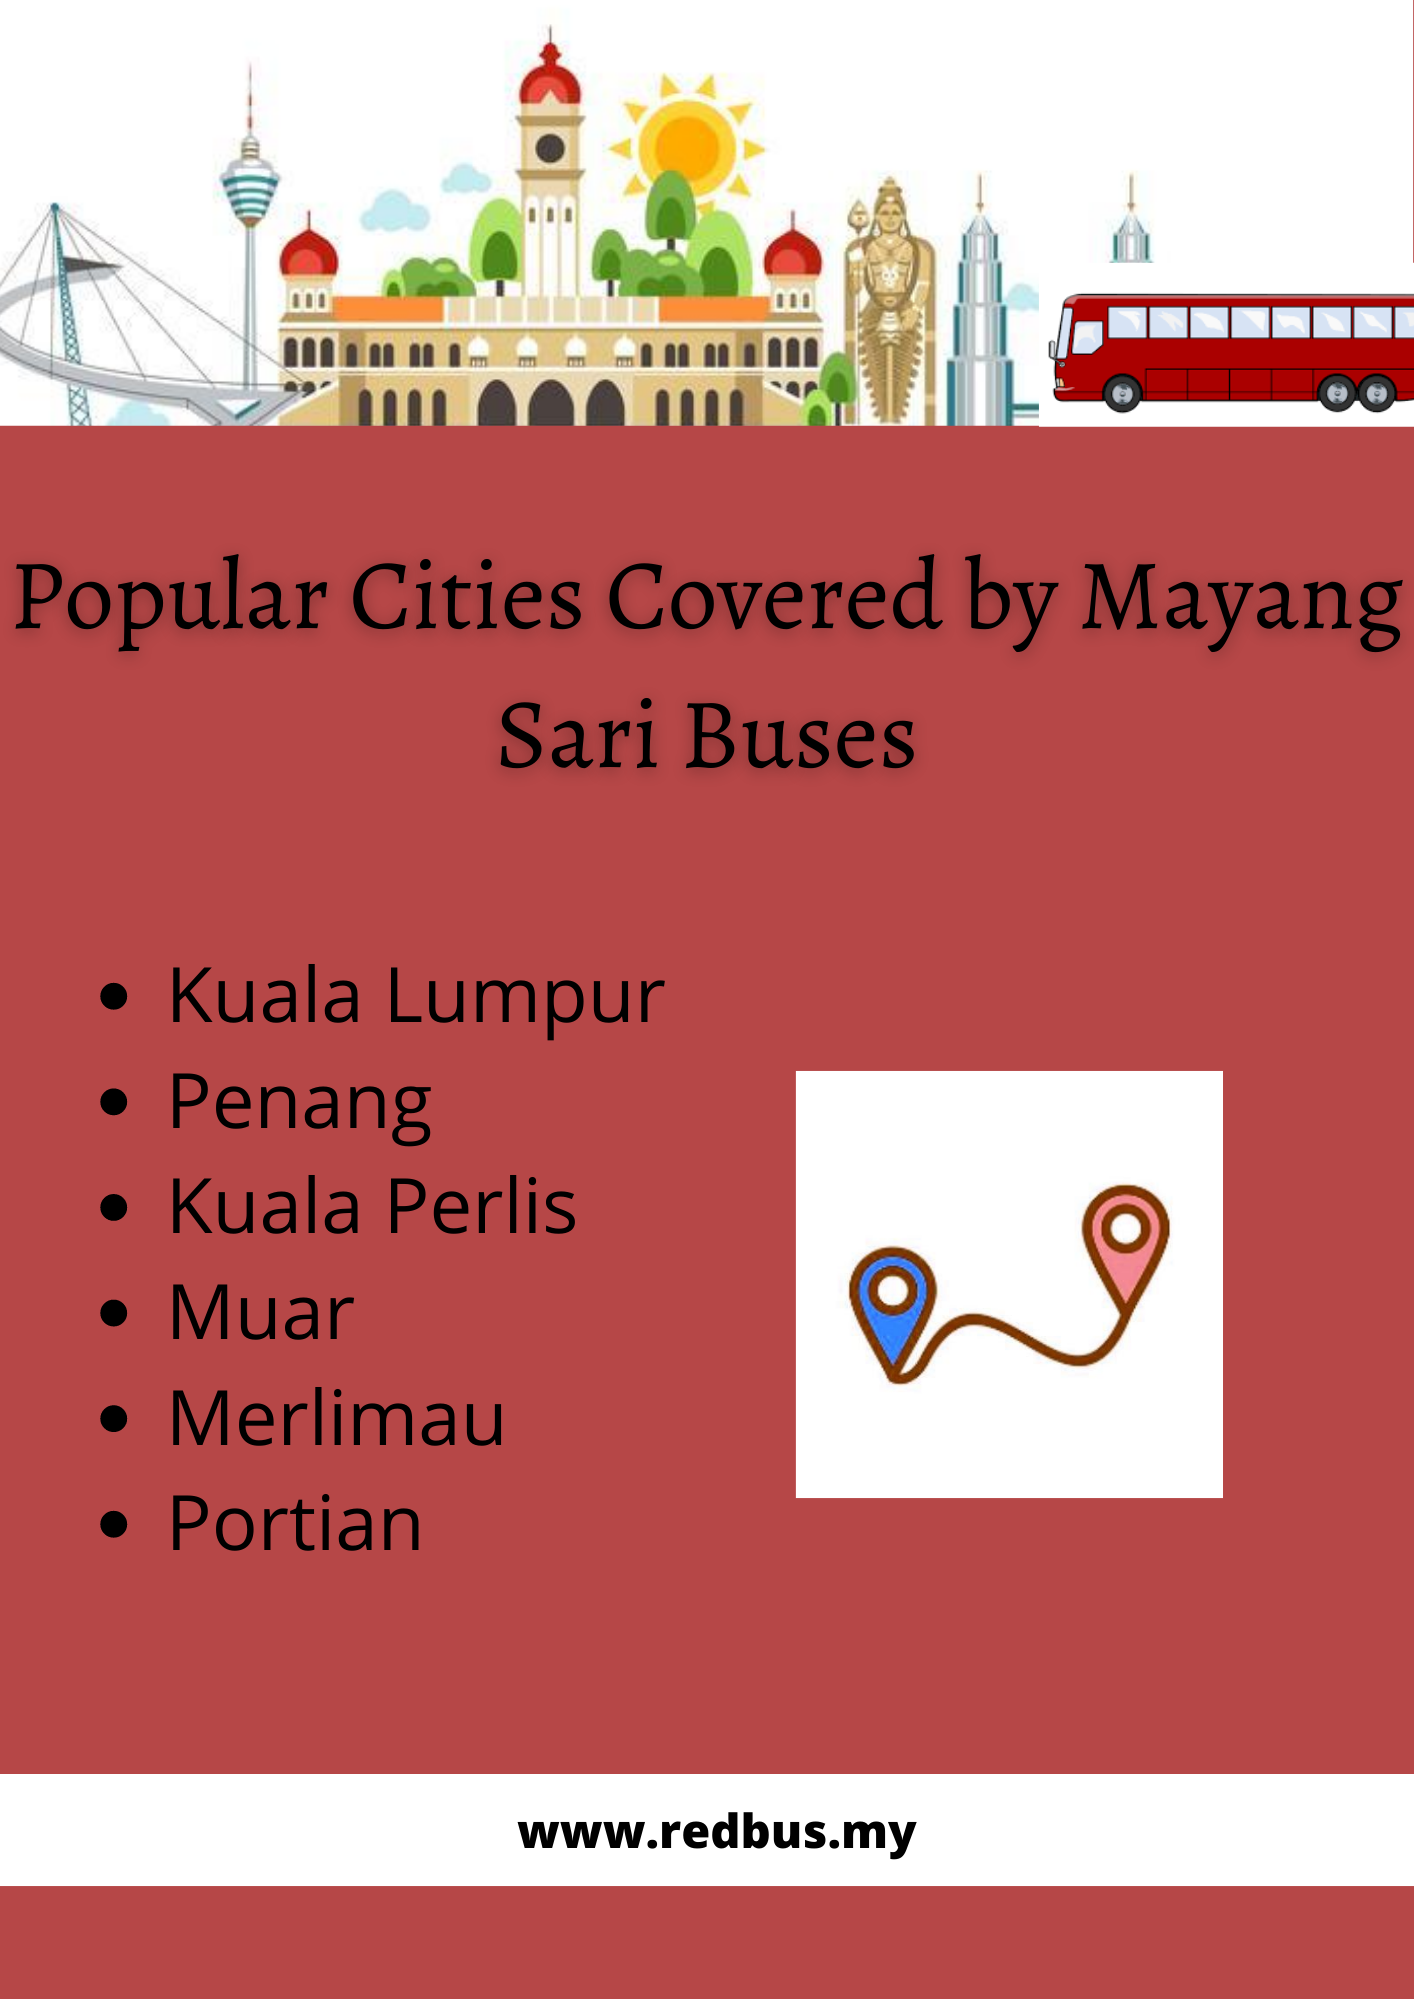 Cities Covered by Mayang Sari Buses